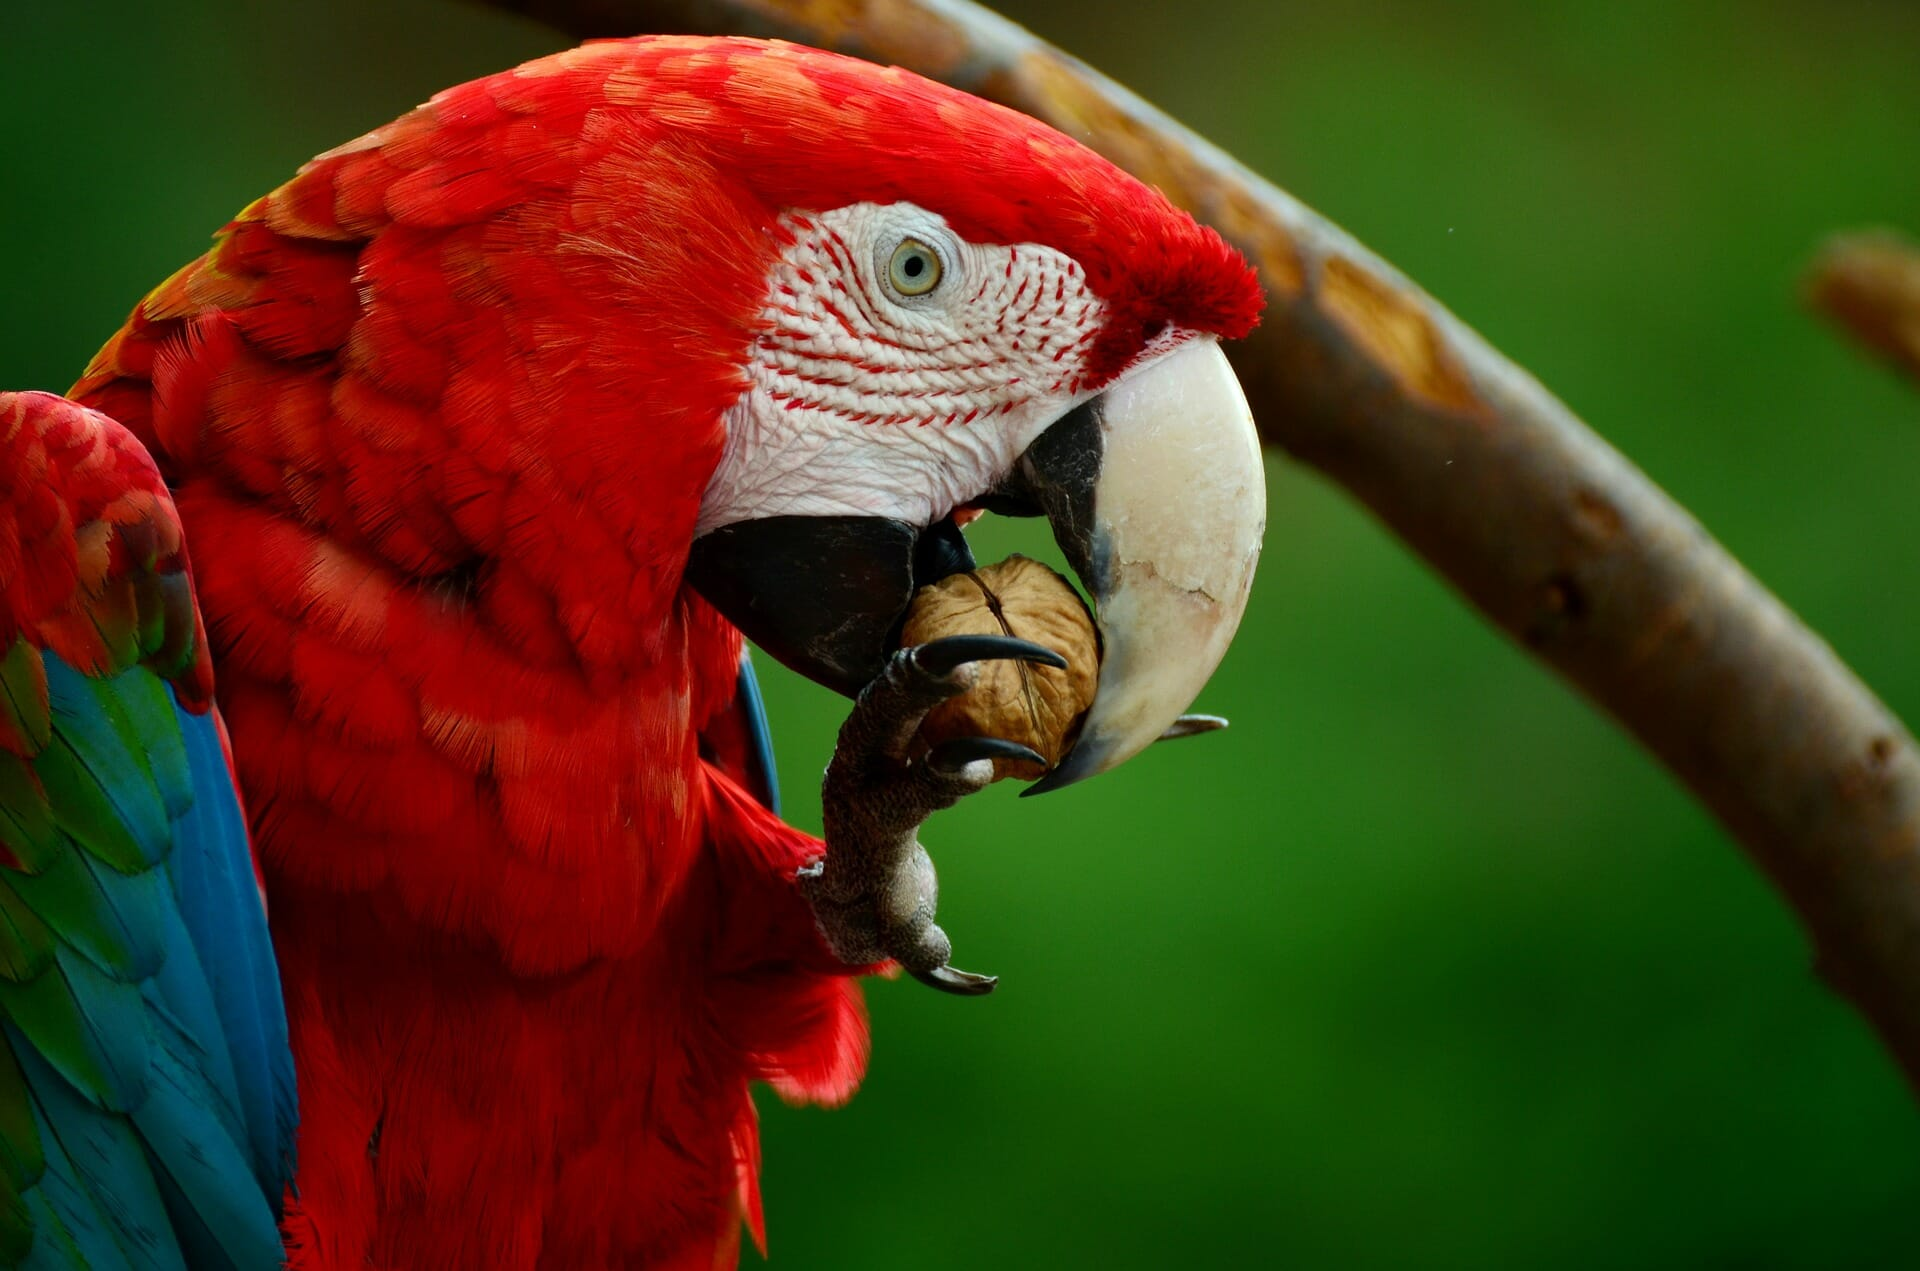 Red Macaw at Copan Ruinas